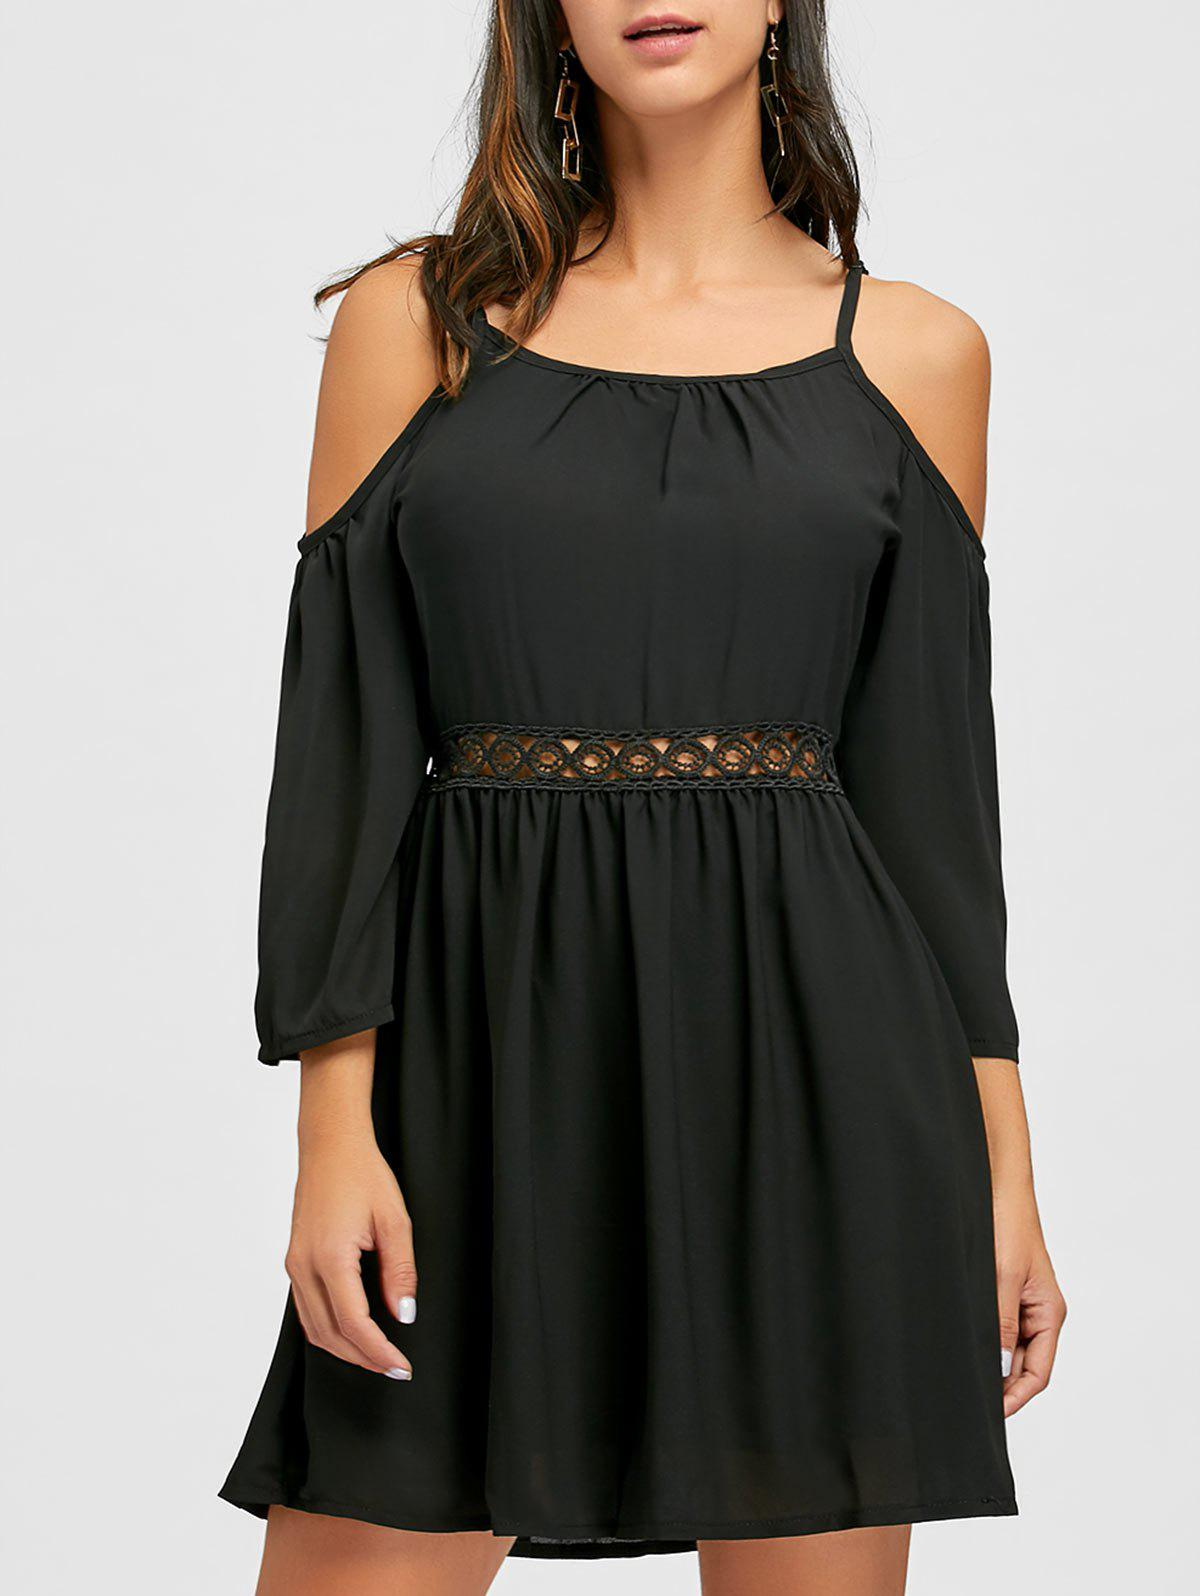 Cami Strap Open Shoulder Chiffon Dress - BLACK XL